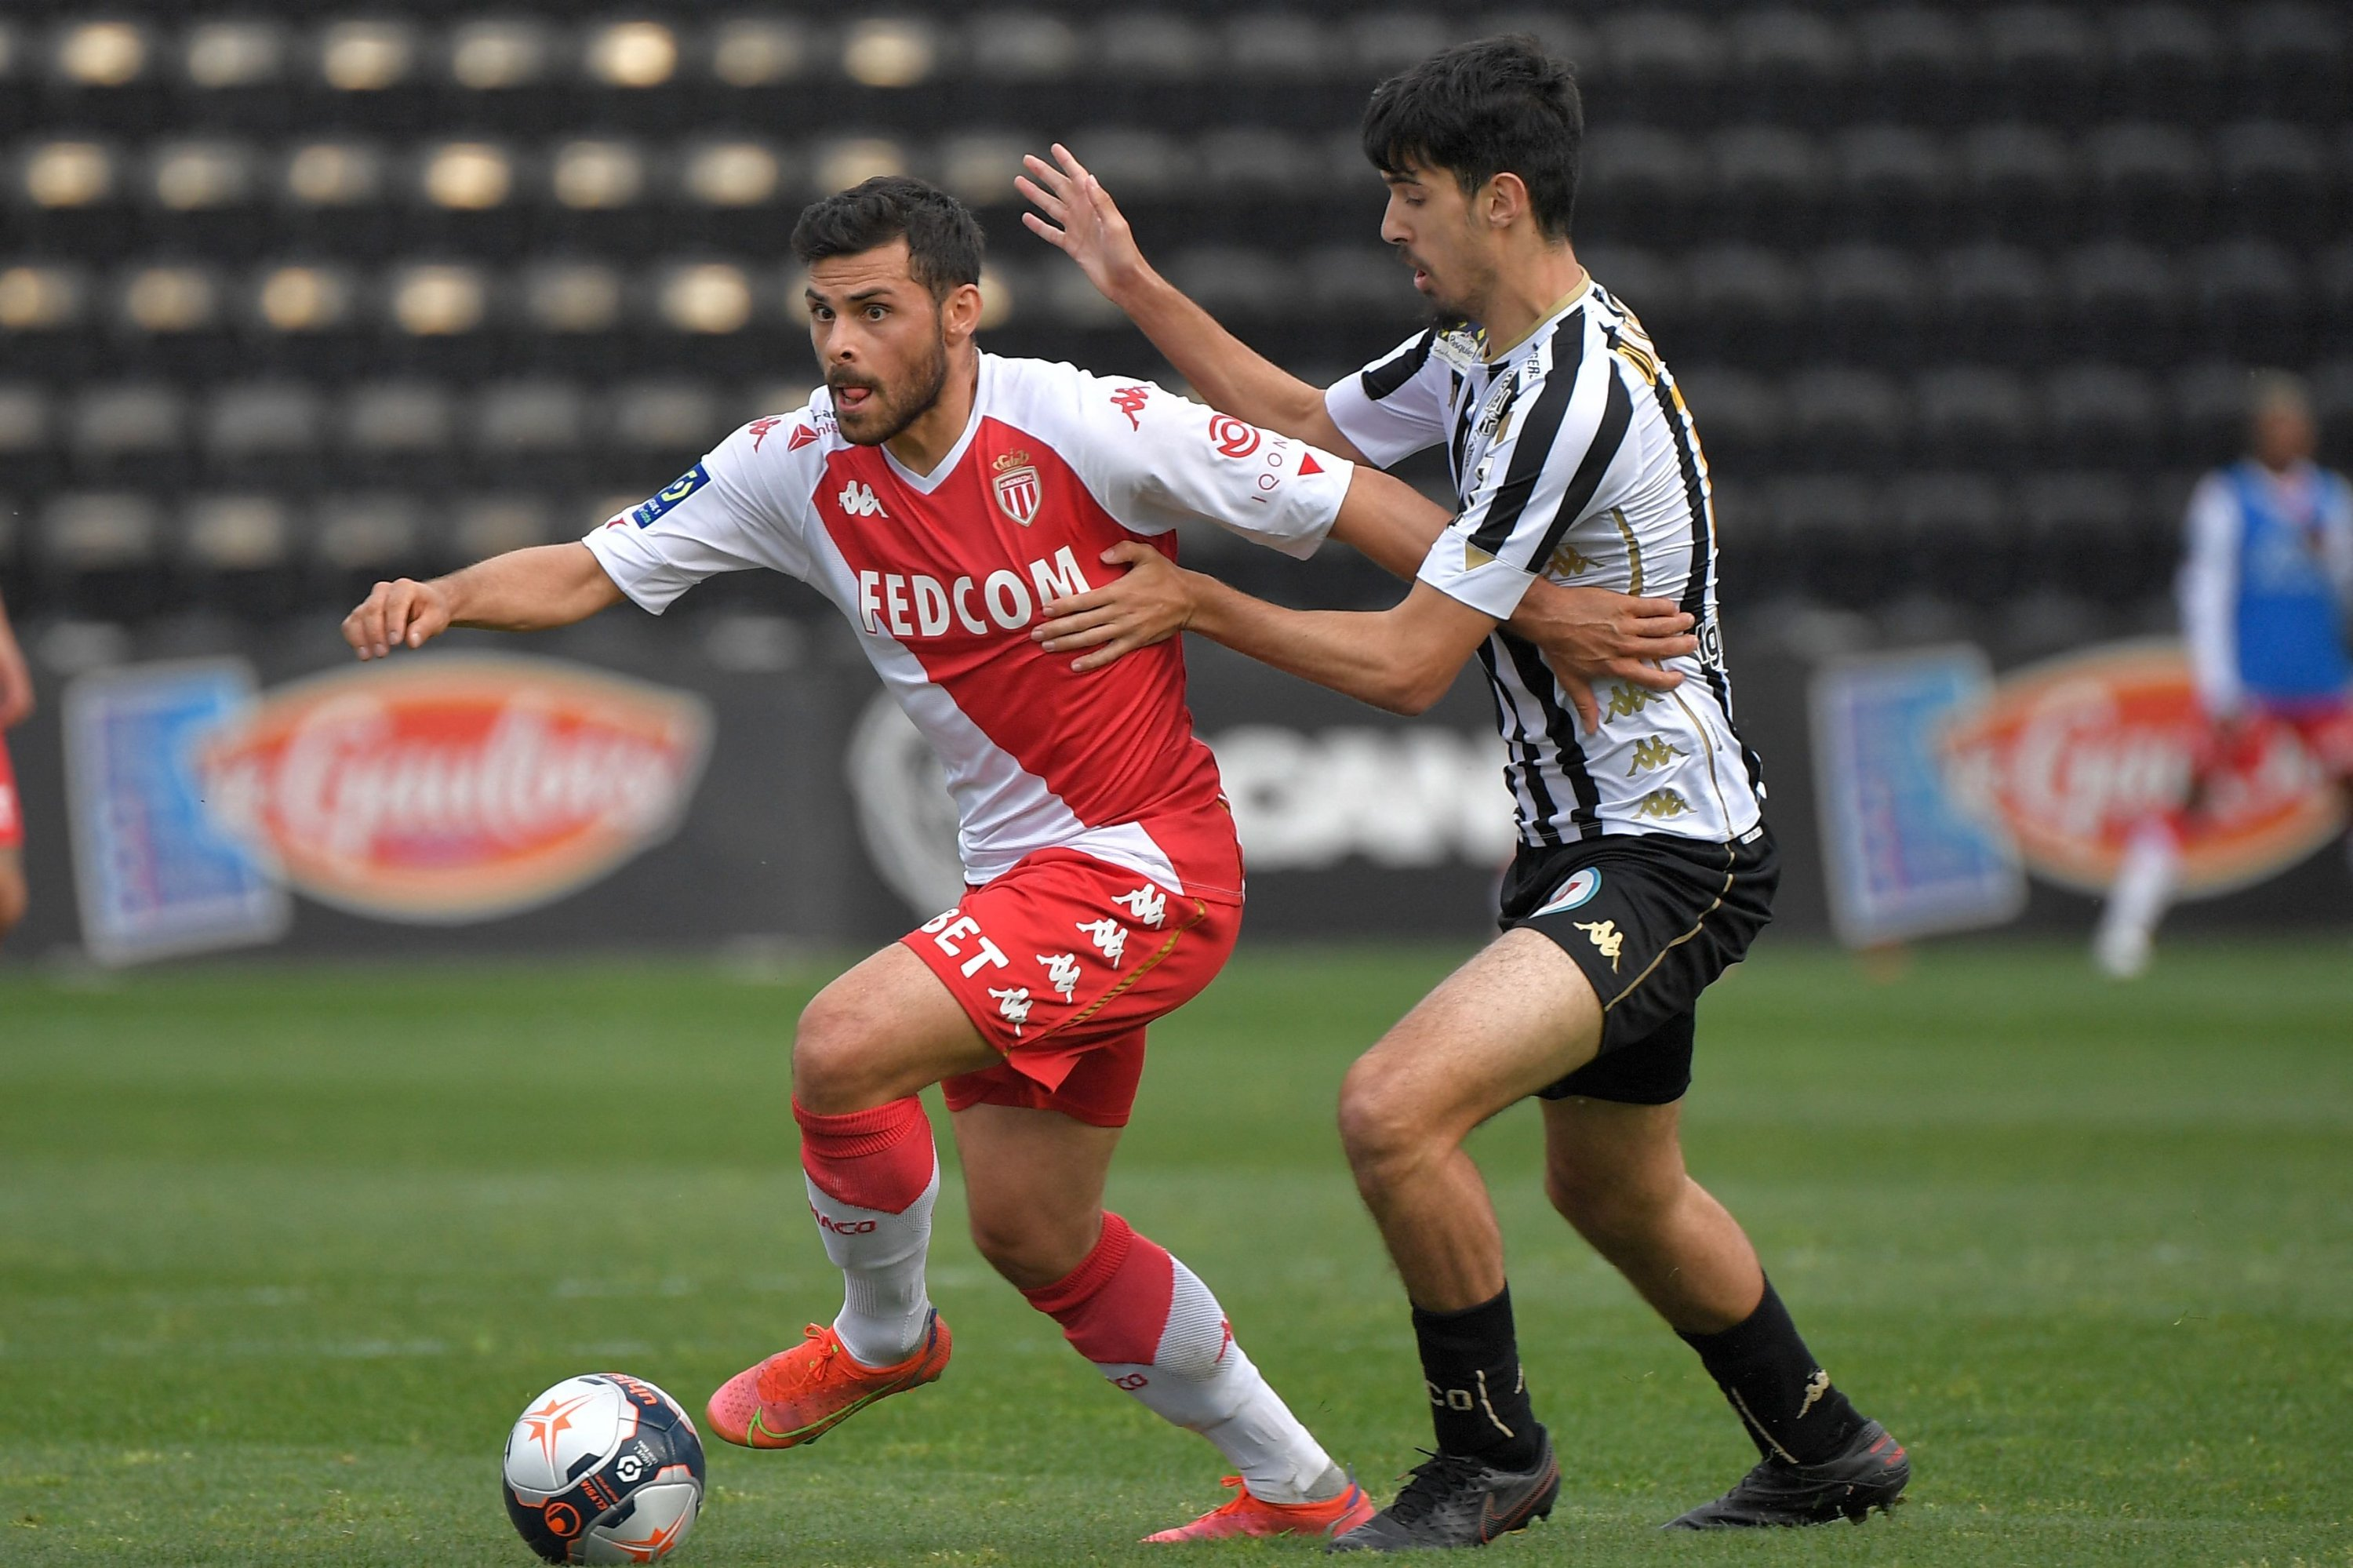 Monaco's German forward Kevin Volland (L) fights for the ball with Angers' French midfielder Zinedine Ould Khaled during a French L1 match at the Raymond Kopa Stadium, Angers, France, April 25, 2021. (AFP Photo)